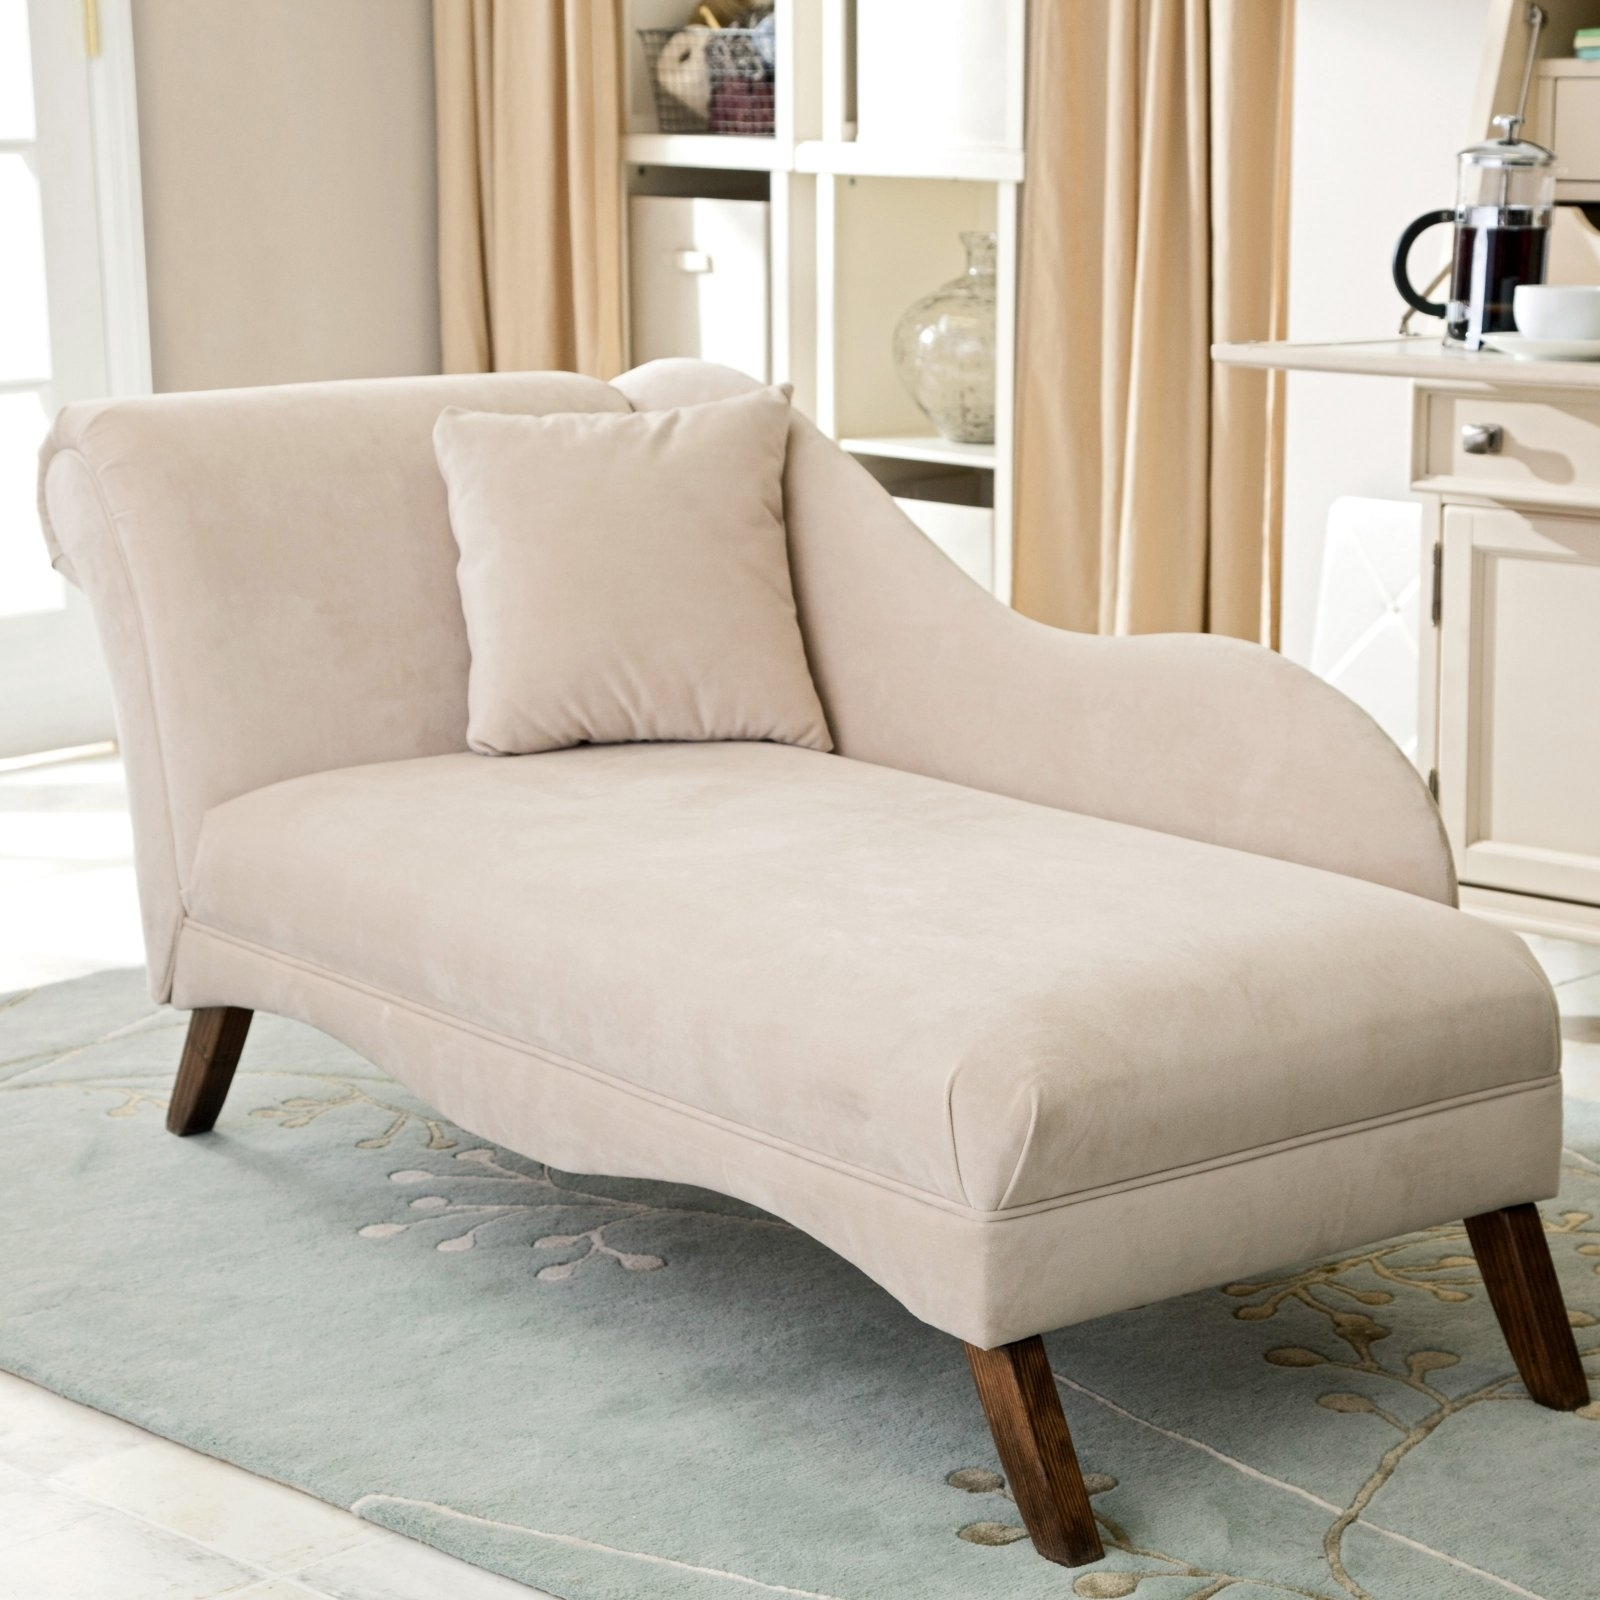 Sofa : Fabulous Chaise Lounges For Bedrooms Folding Lounge Chair With Bedroom Sofas (Image 8 of 10)